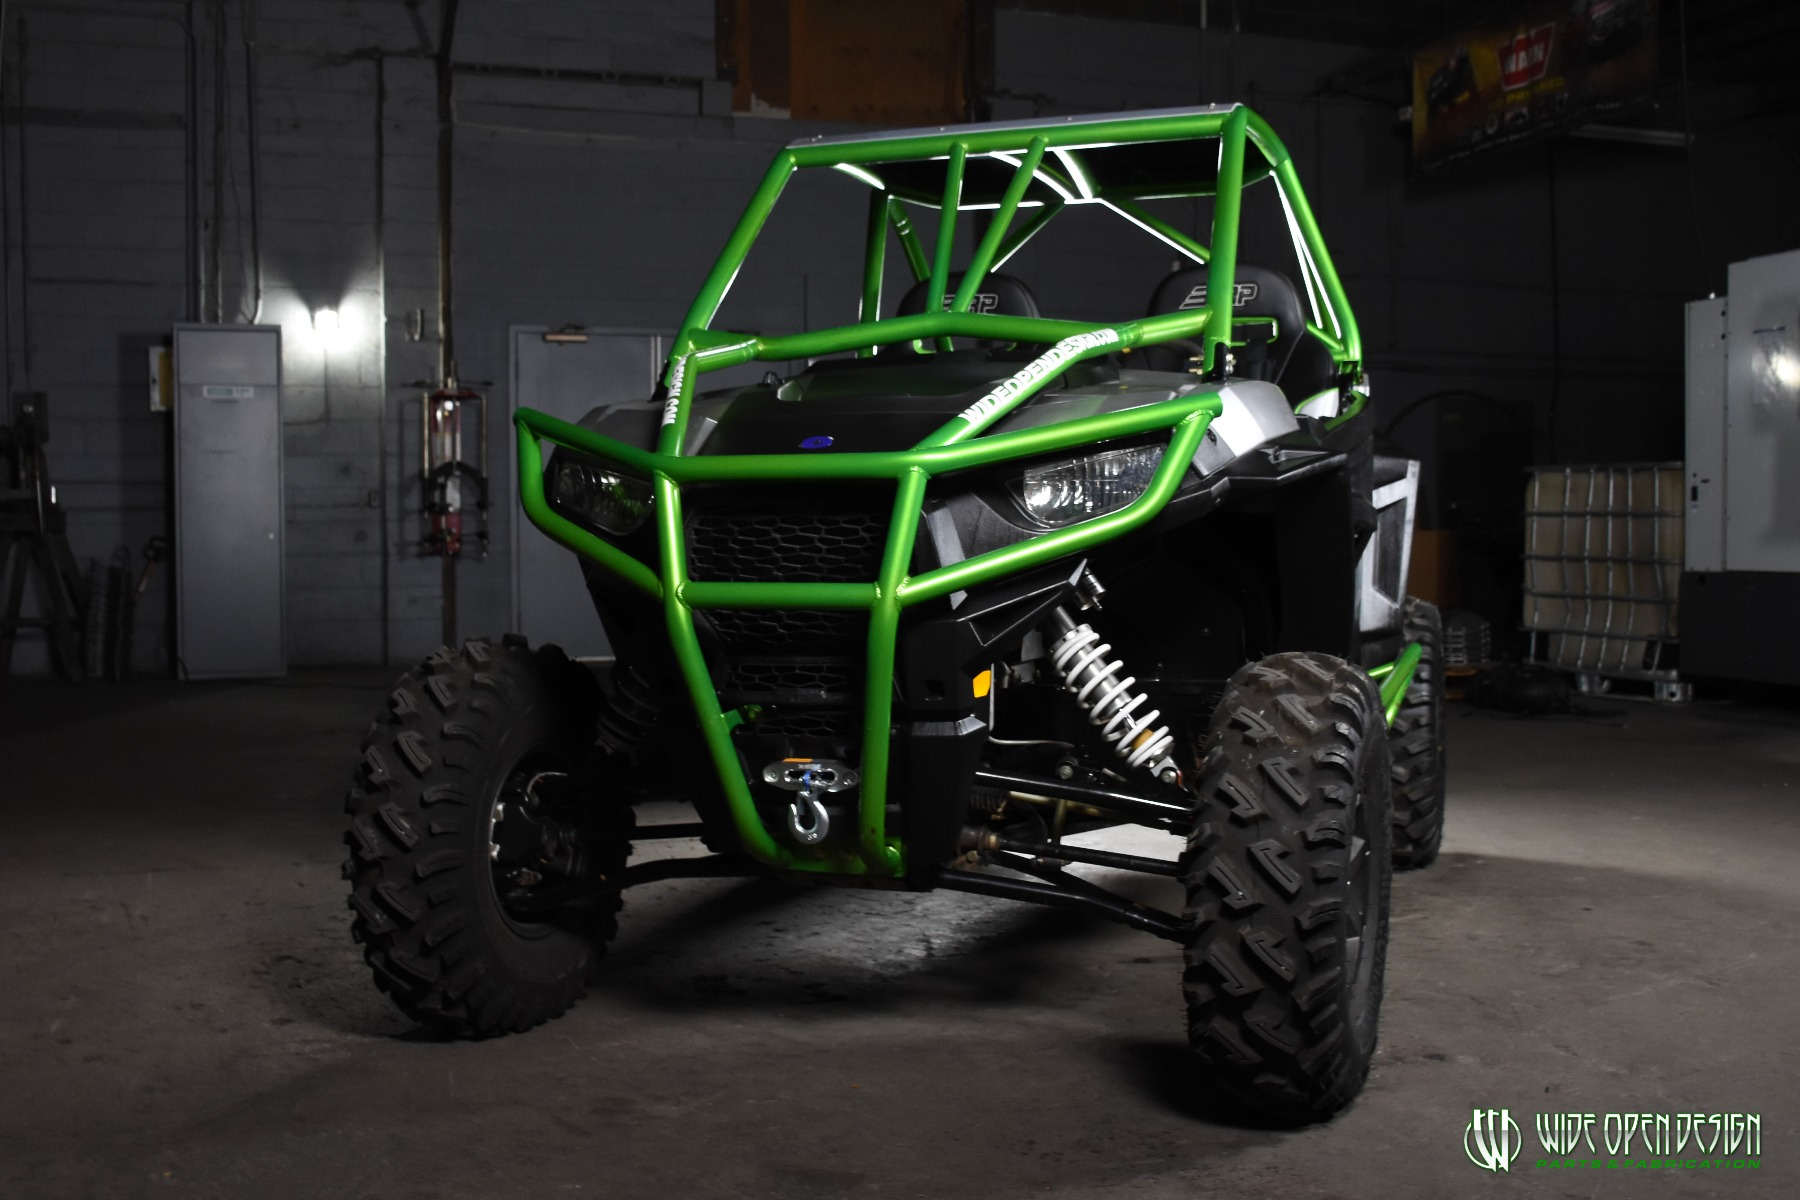 Jason's 1000s RZR with Wide Open Design Rolled Roof Cage, Front Bumper with Tie In, and Rocker Guards 5